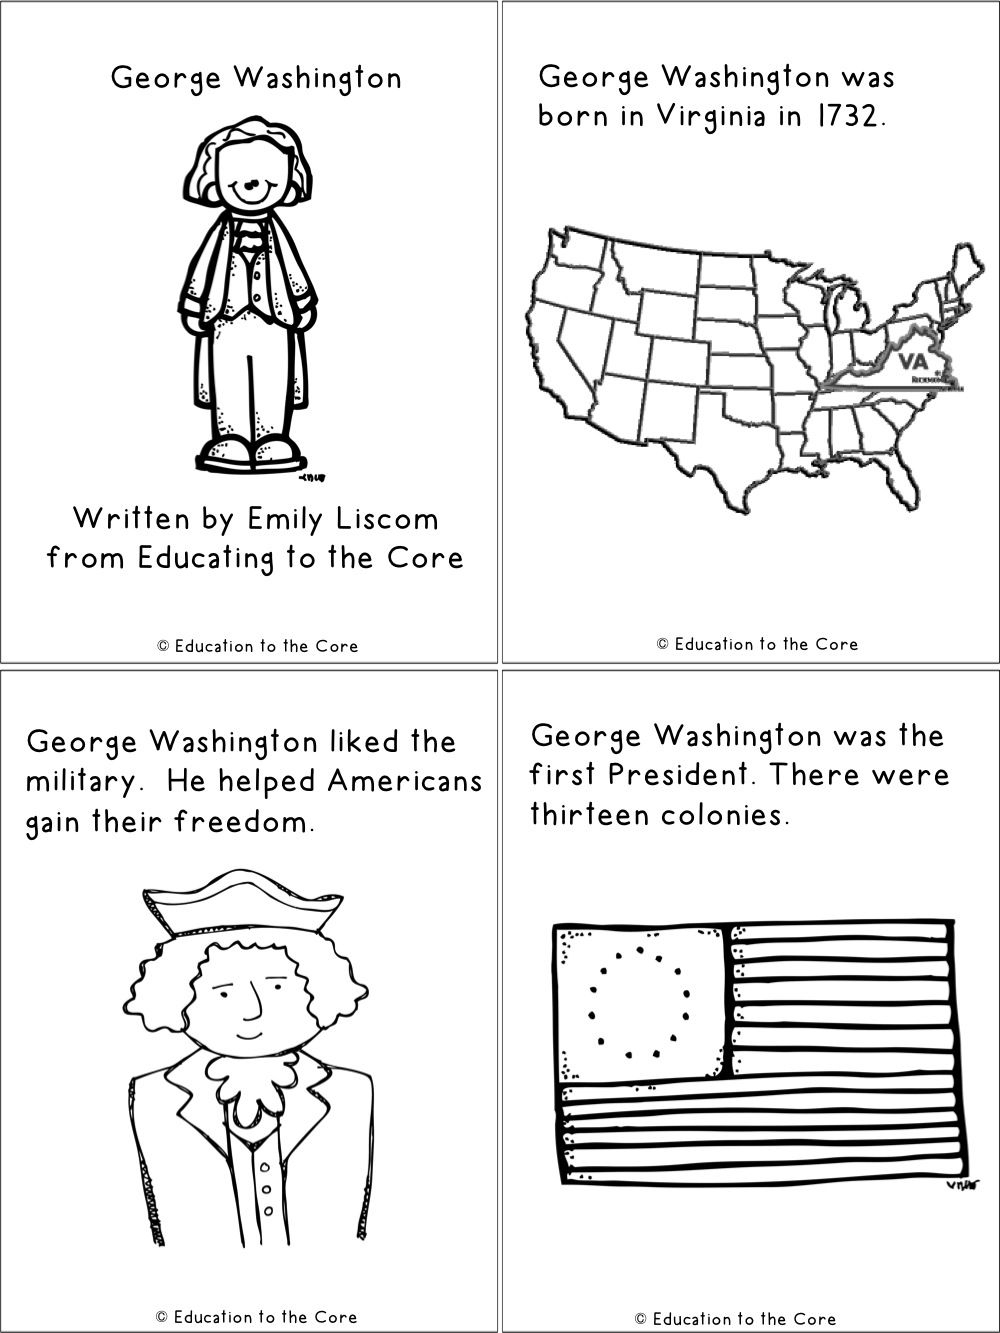 President's Day Pop-Up Books | Top Teachers Smorgasboard - Free Printable George Washington Worksheets